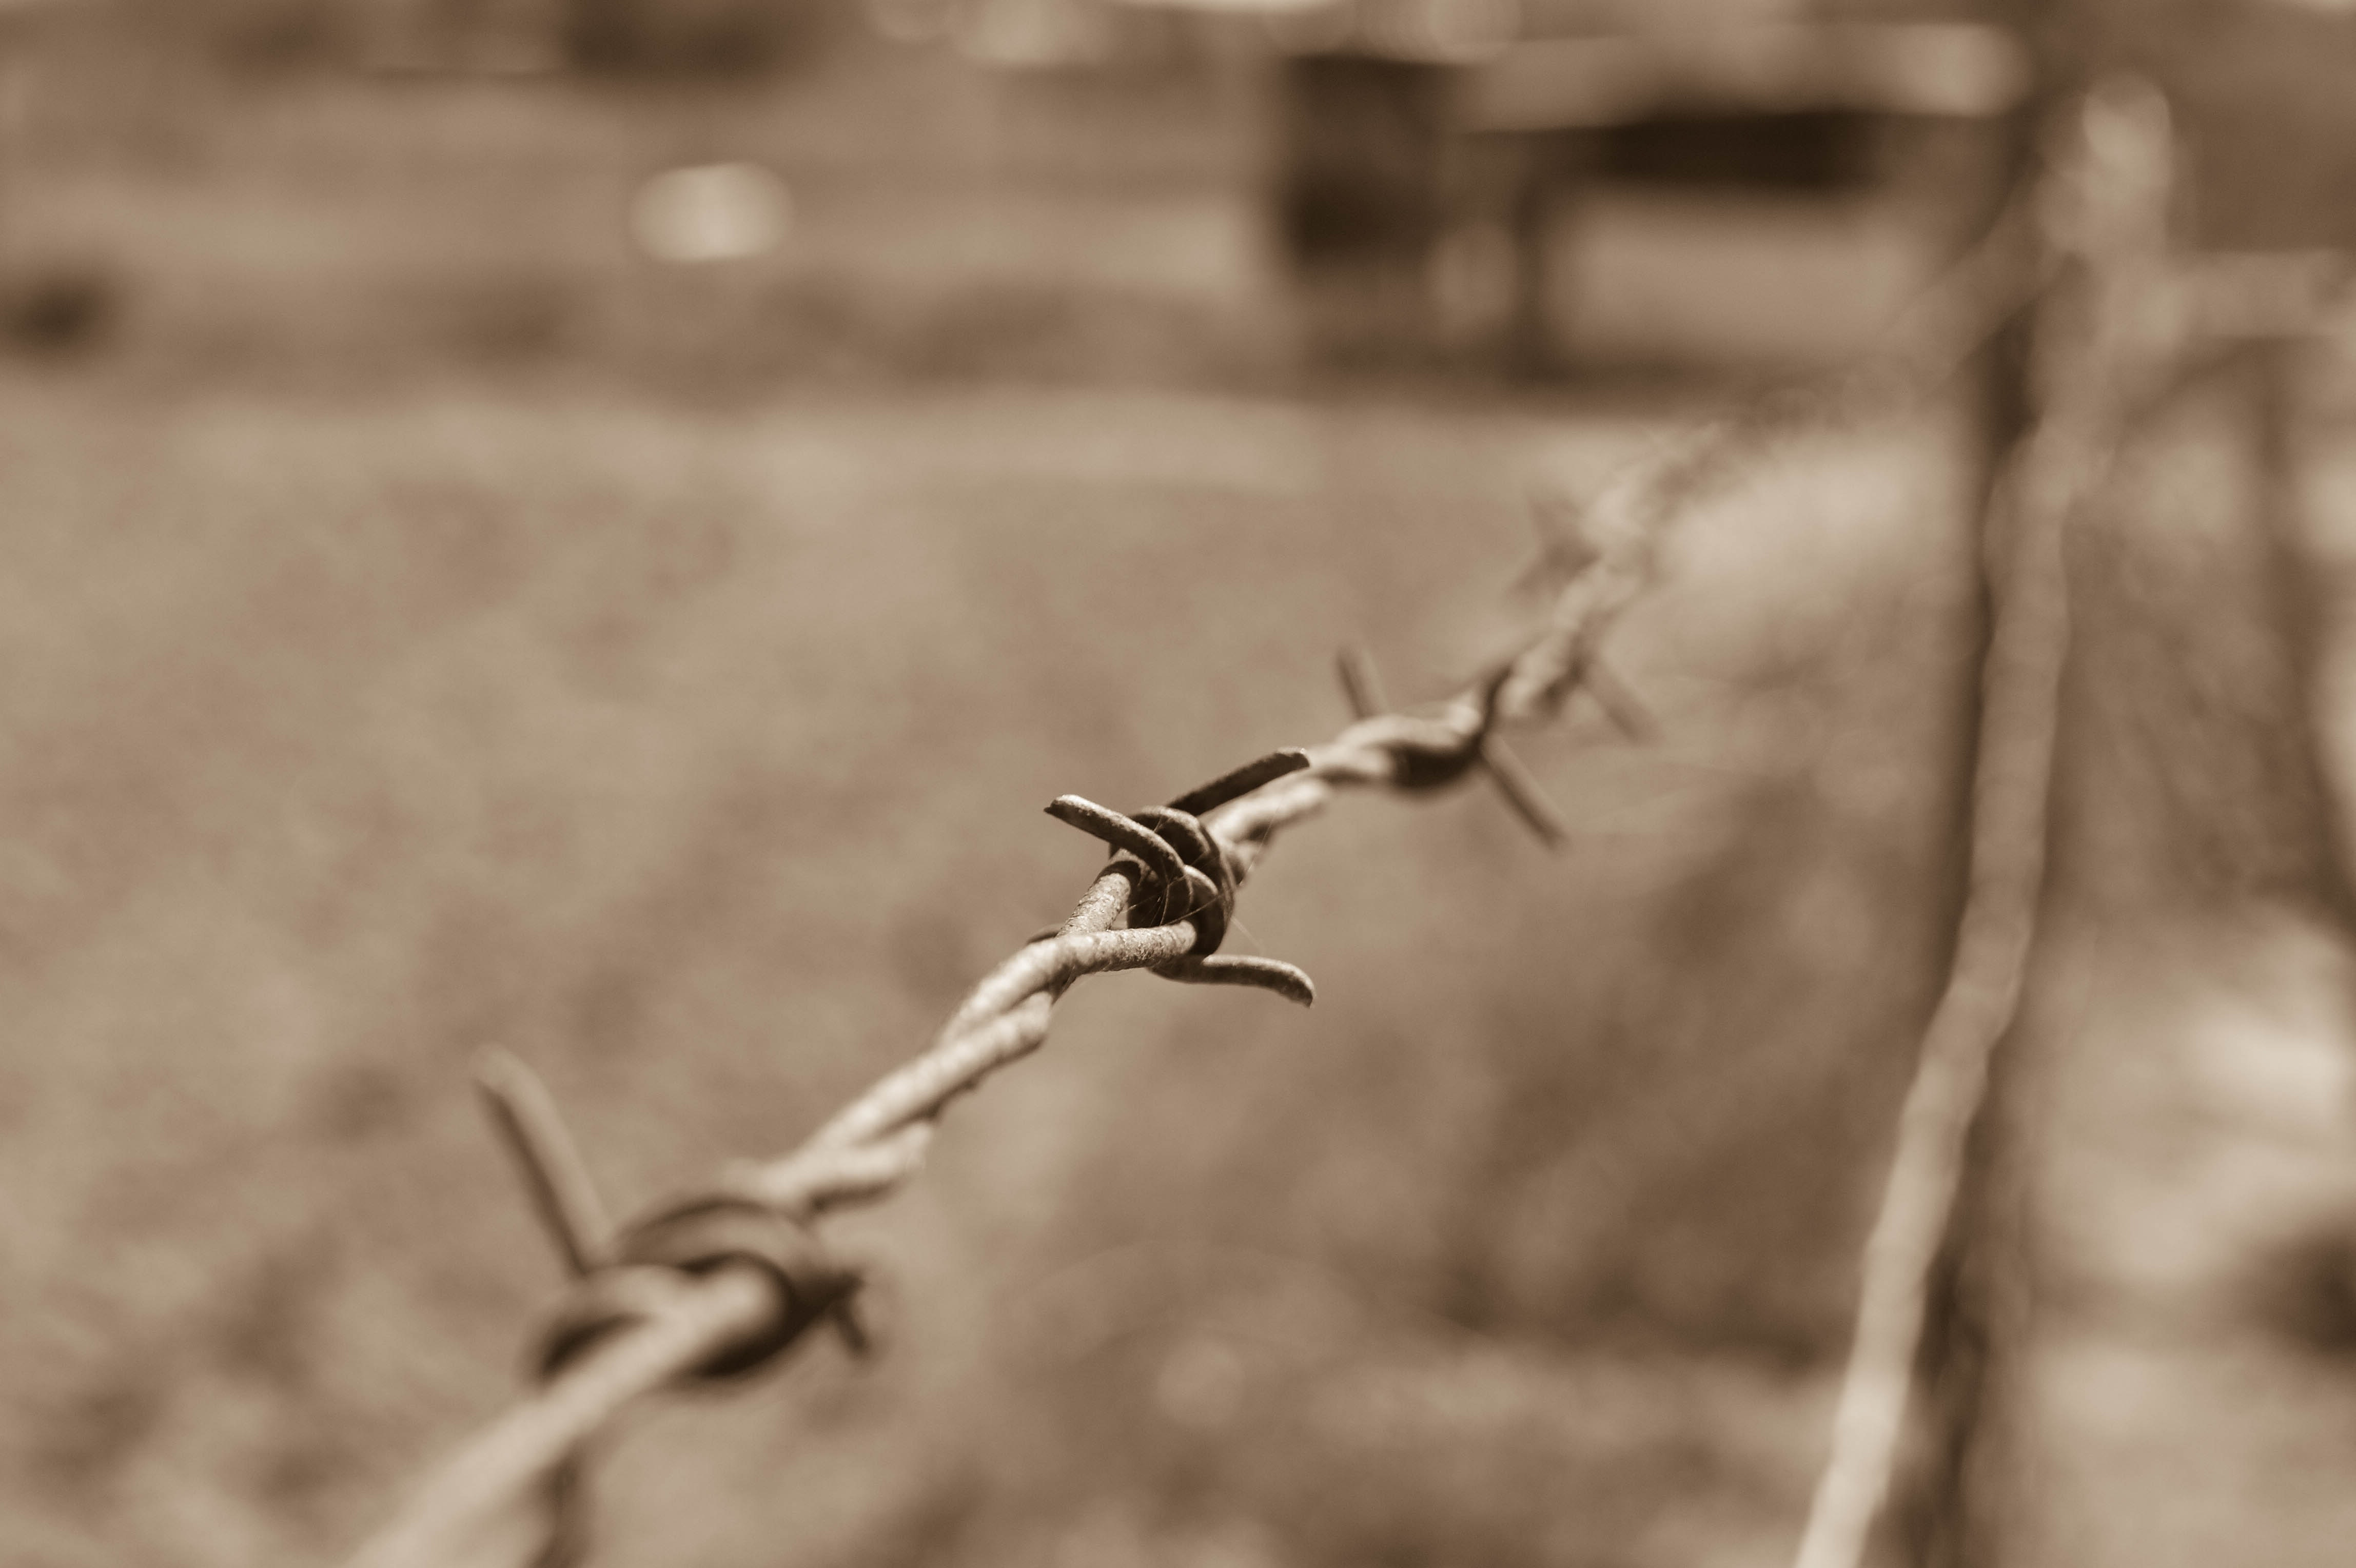 Close-up of Wire Against Blurred Background, Art, Safety, Steel, Sharp, HQ Photo